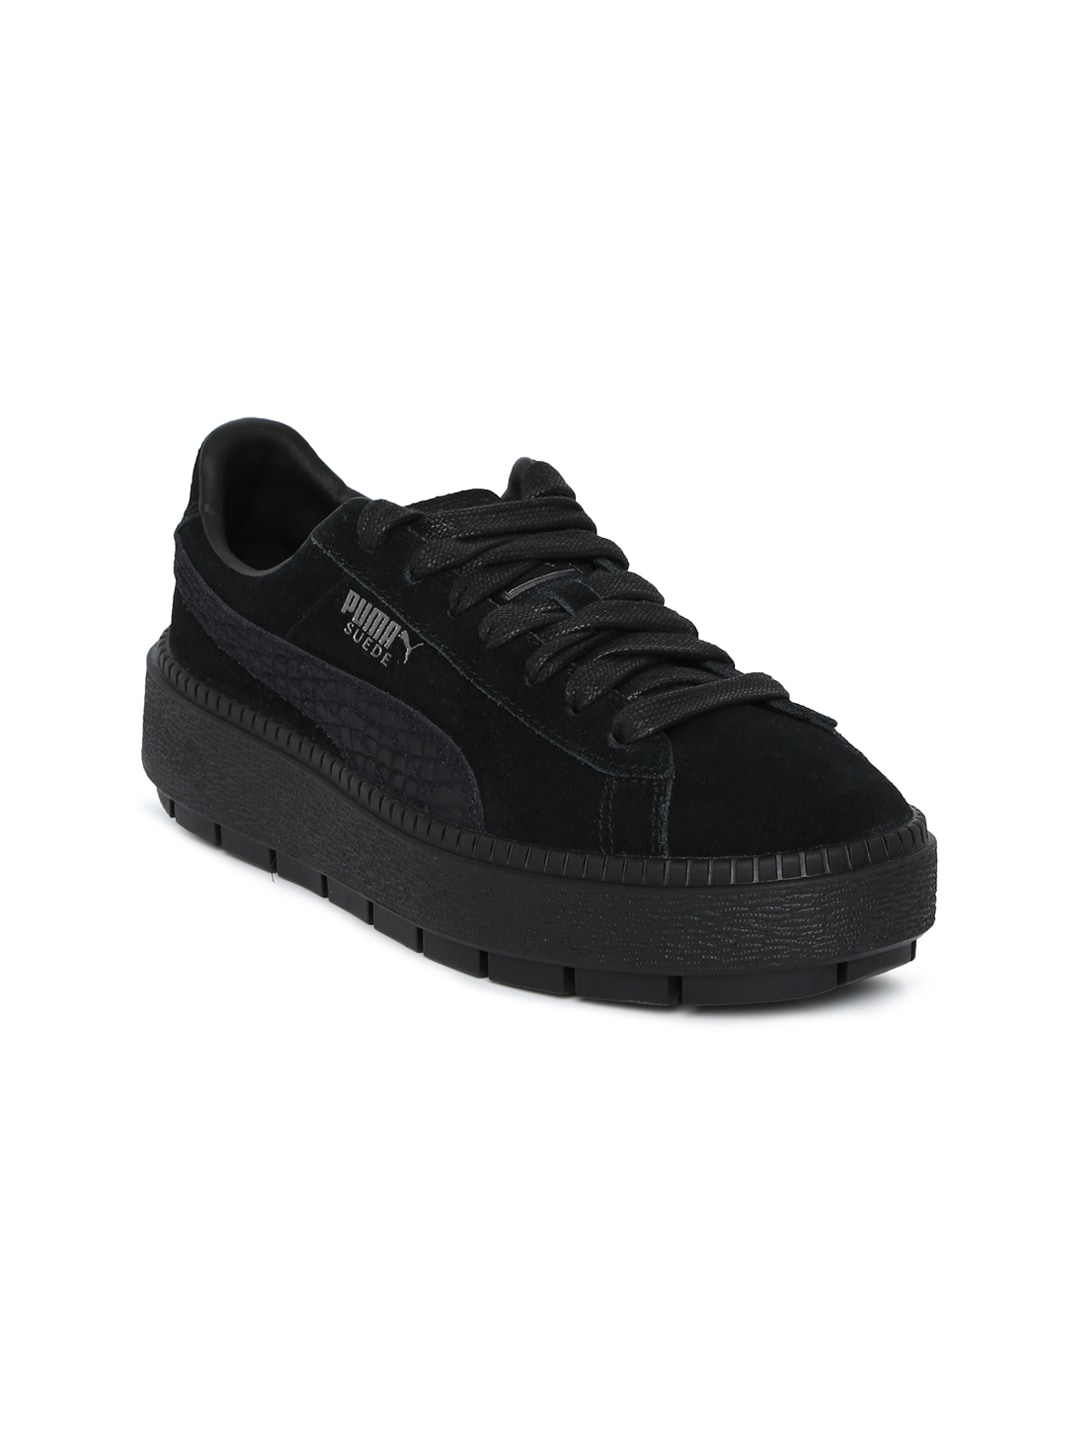 663e8552533 Puma Suede Shoes - Buy Puma Suede Shoes online in India